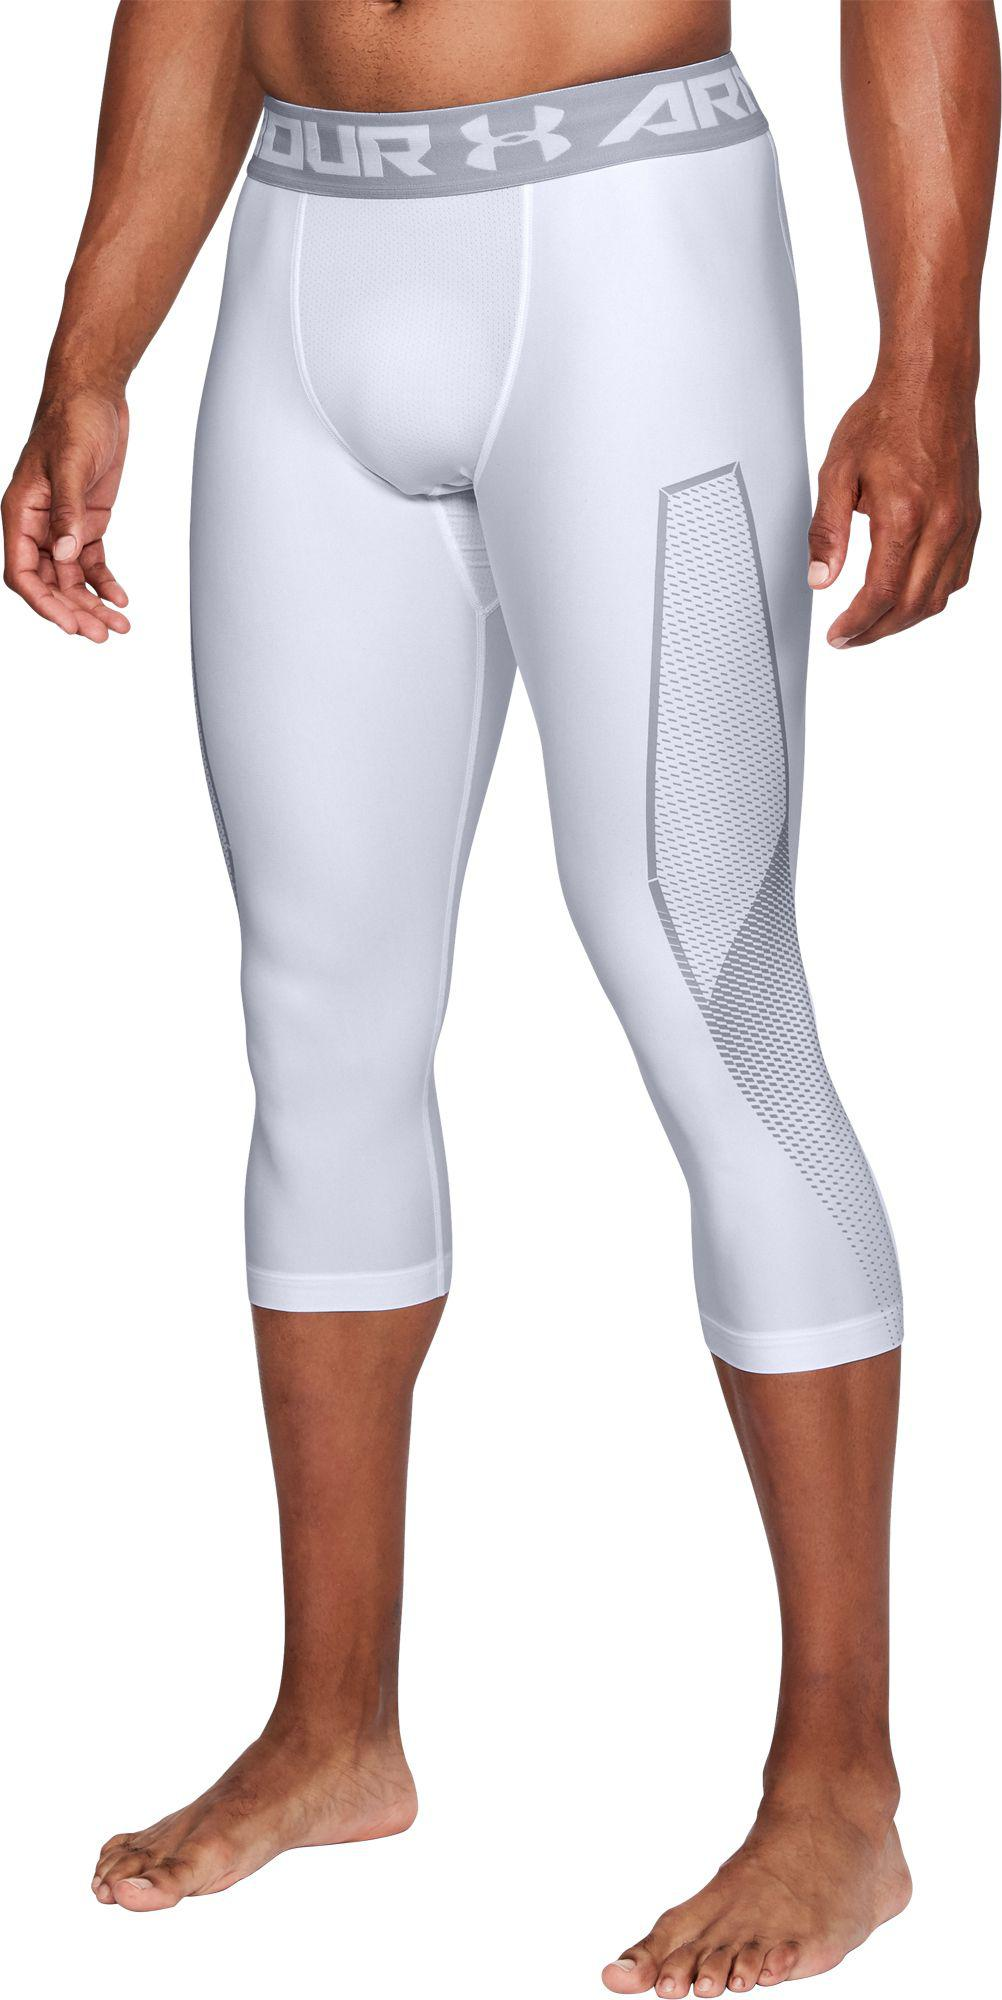 6395f46a2a631a Under Armour - Gray Heatgear Armour Graphic 3/4 Length Tights for Men - Lyst